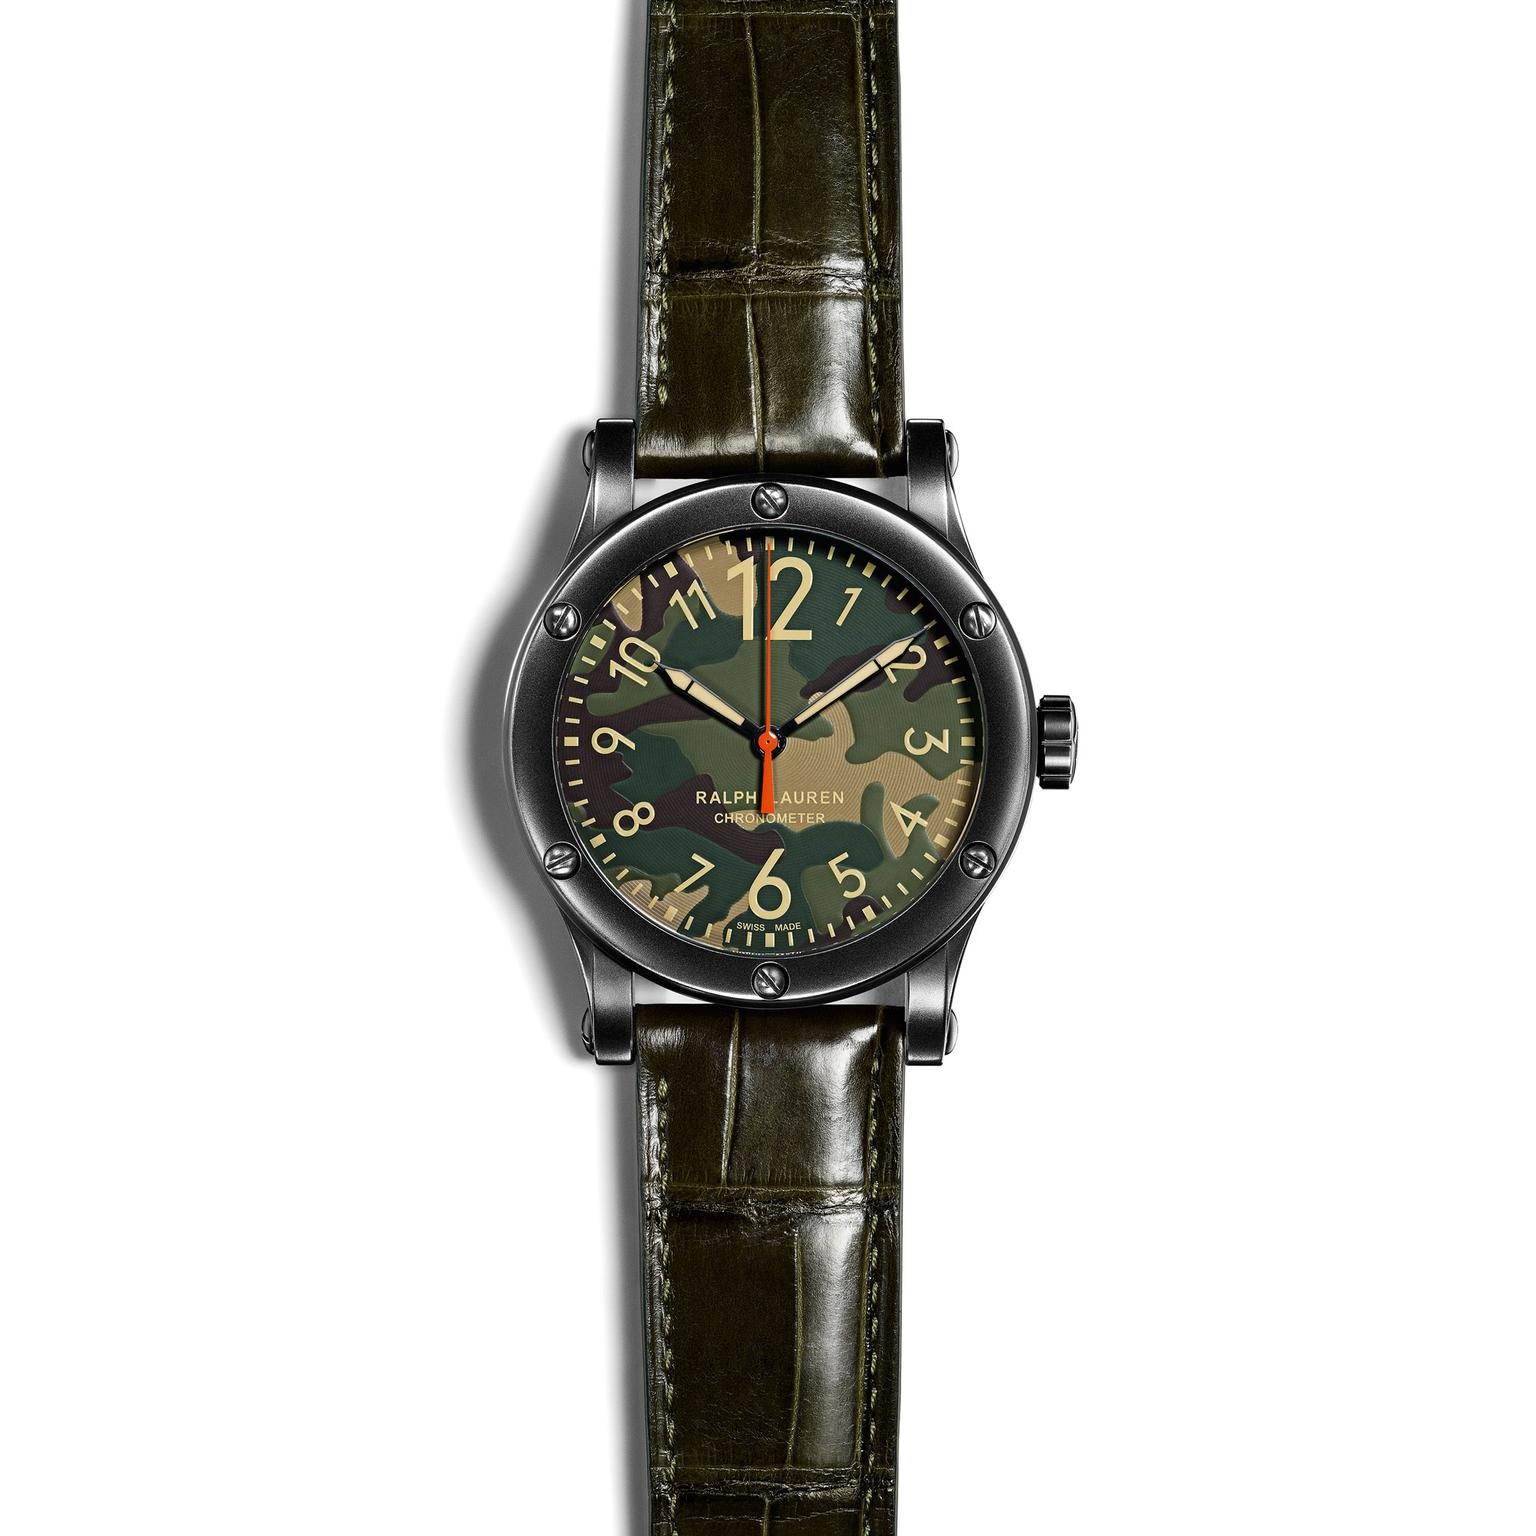 Ralph Lauren safari watch with camo dial_zoom